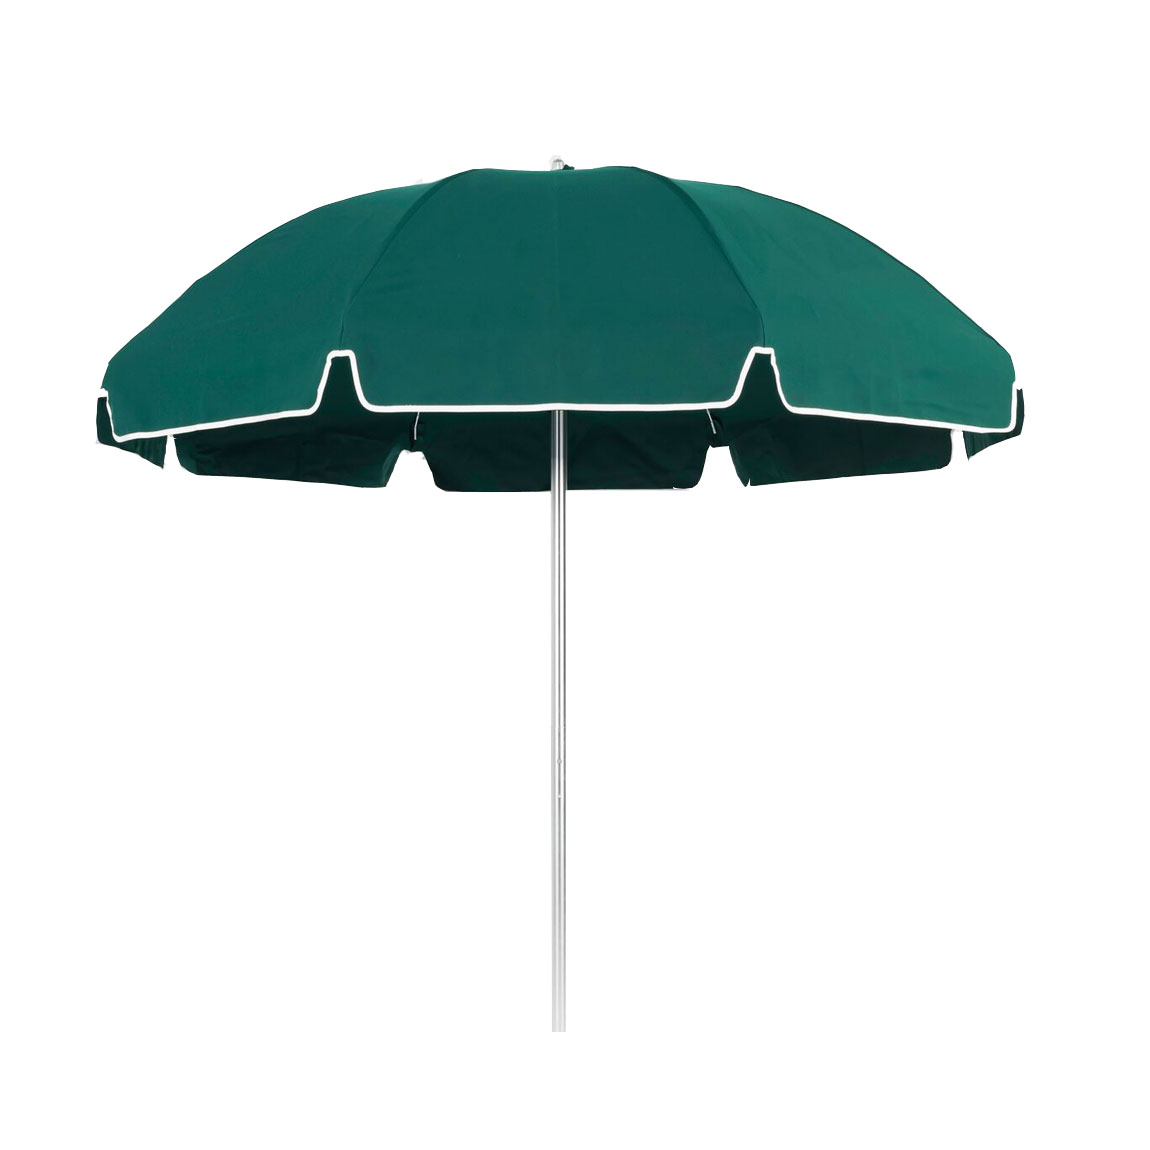 7 5 Ft Commercial Grade Steel Patio Umbrella With Acrylic Fabric